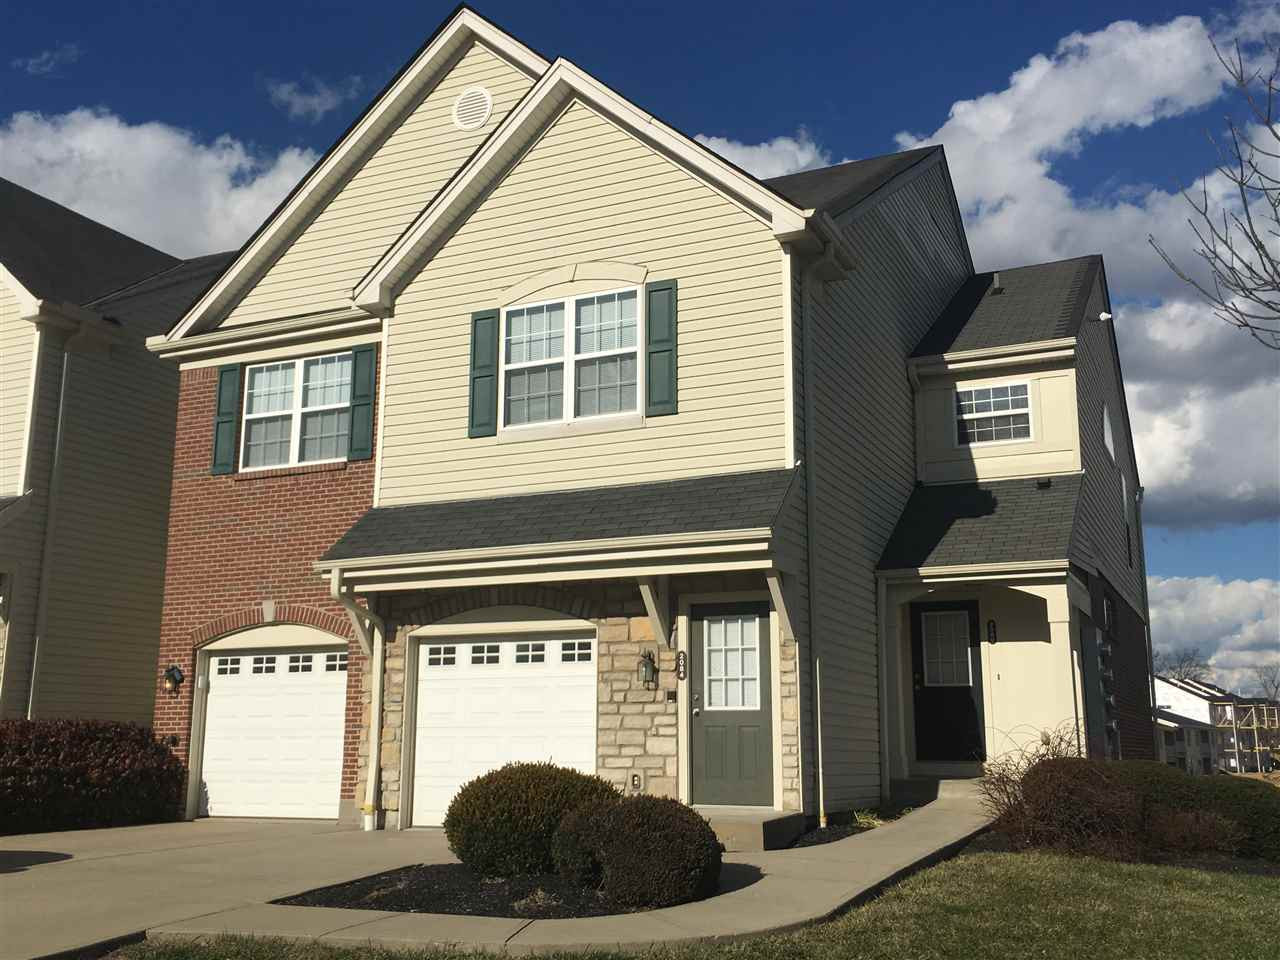 Photo 1 for 2080 Divot Dr Burlington, KY 41005